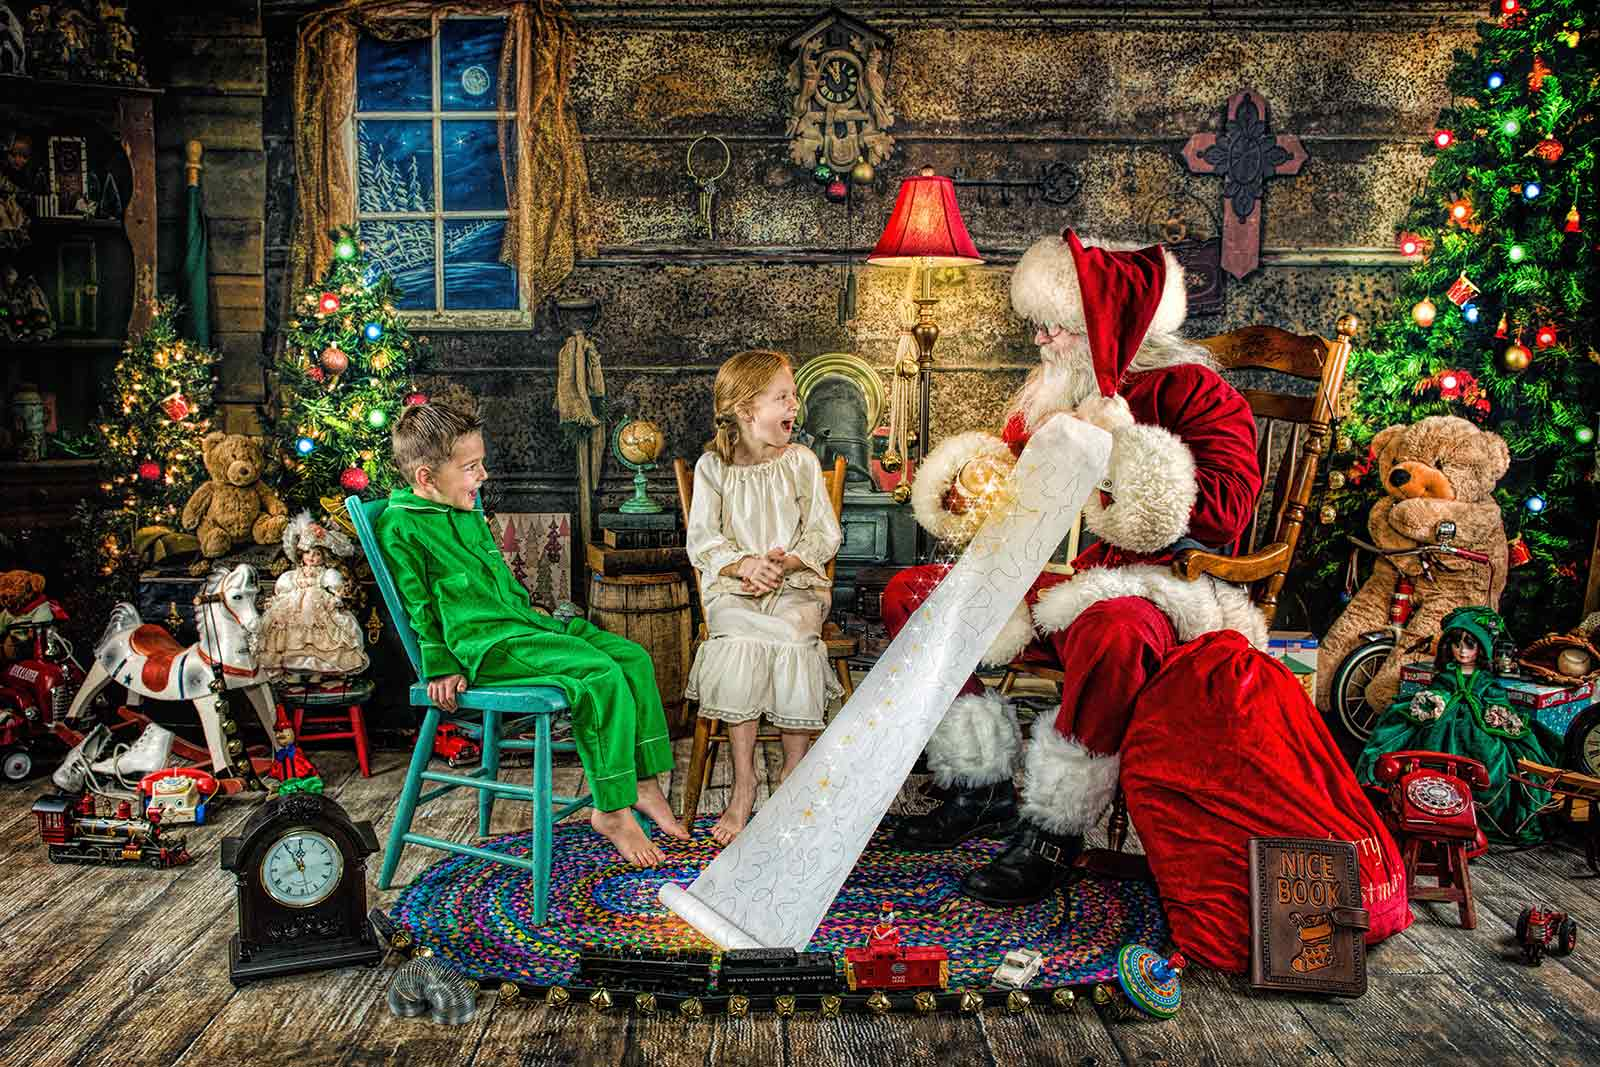 013_Magic-of-Santa-Anna-Thielen-Photography